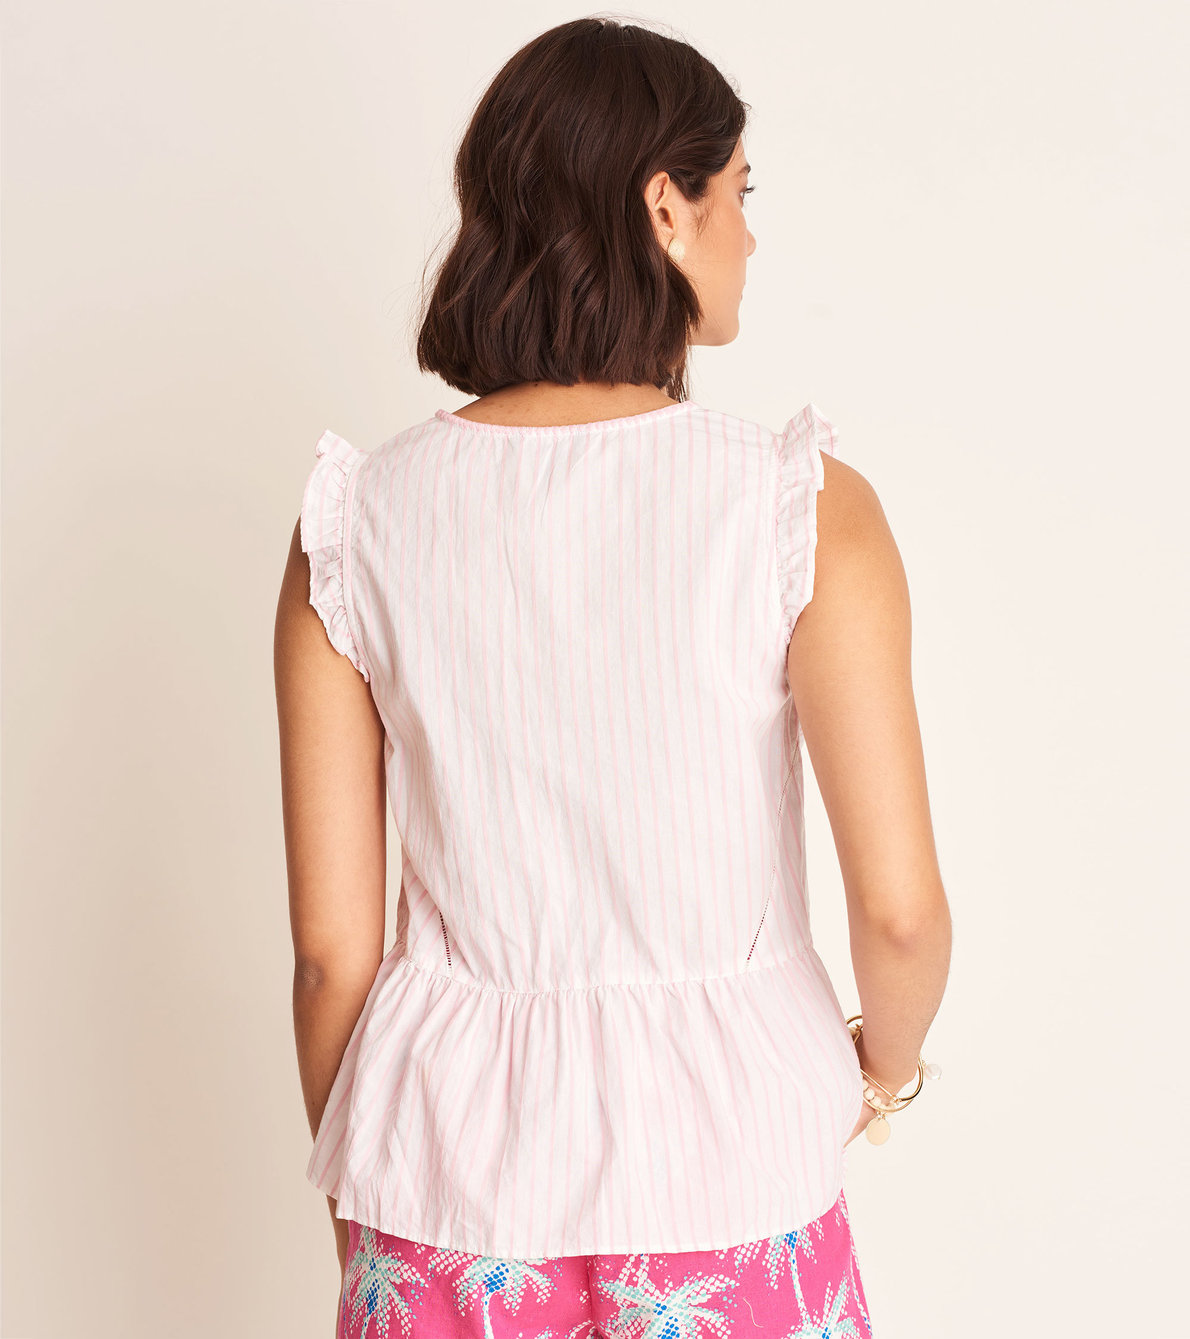 View larger image of Angie Blouse - Pink Lemonade Stripes